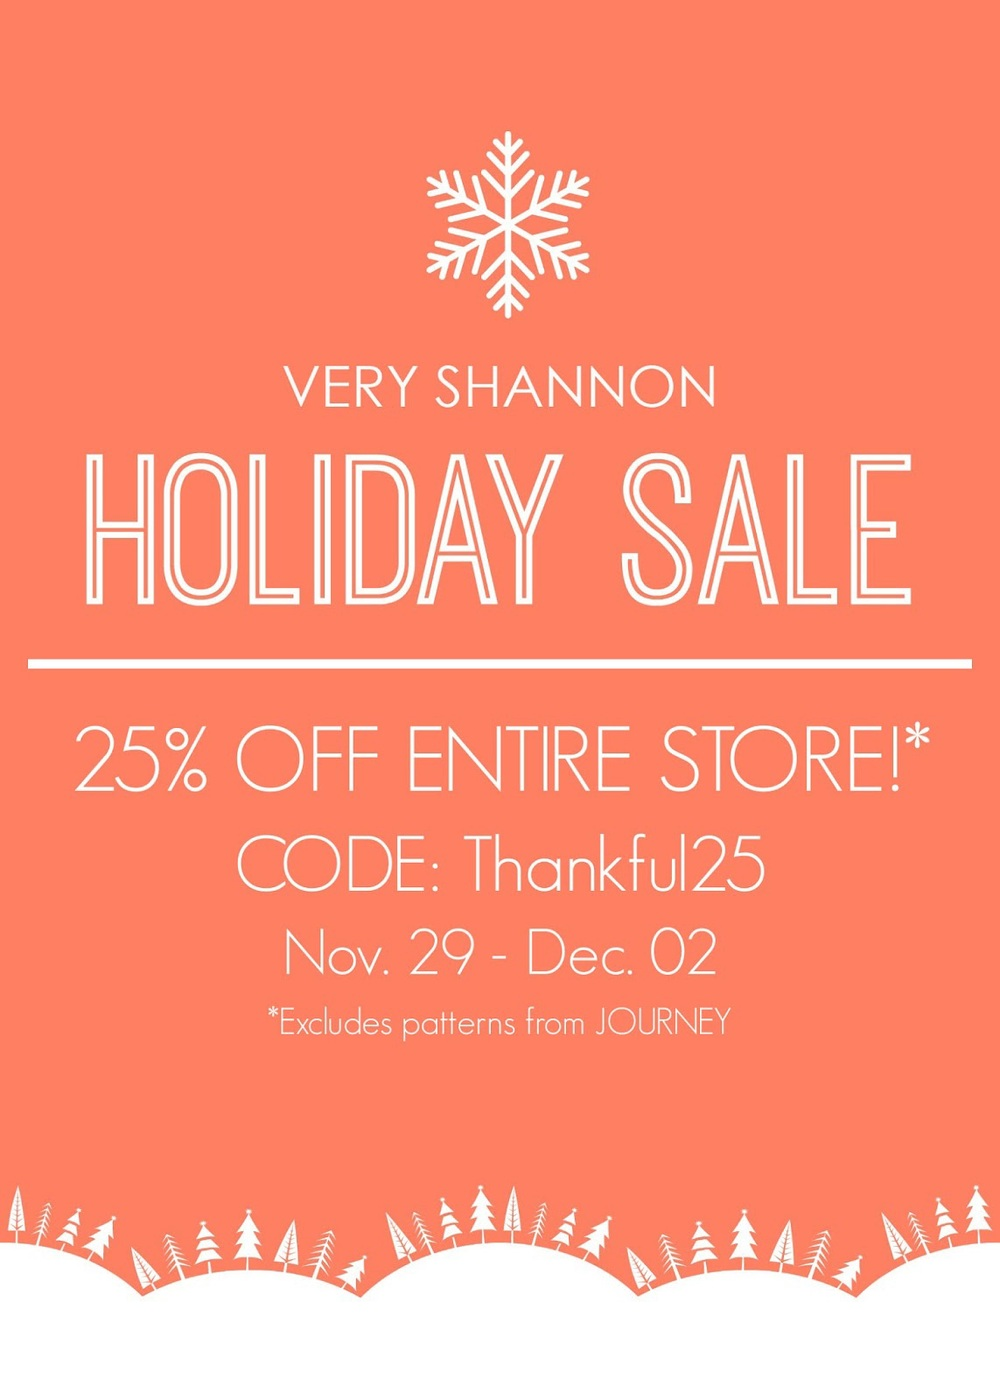 Very Shannon Holiday Sale || 25% off entire store!